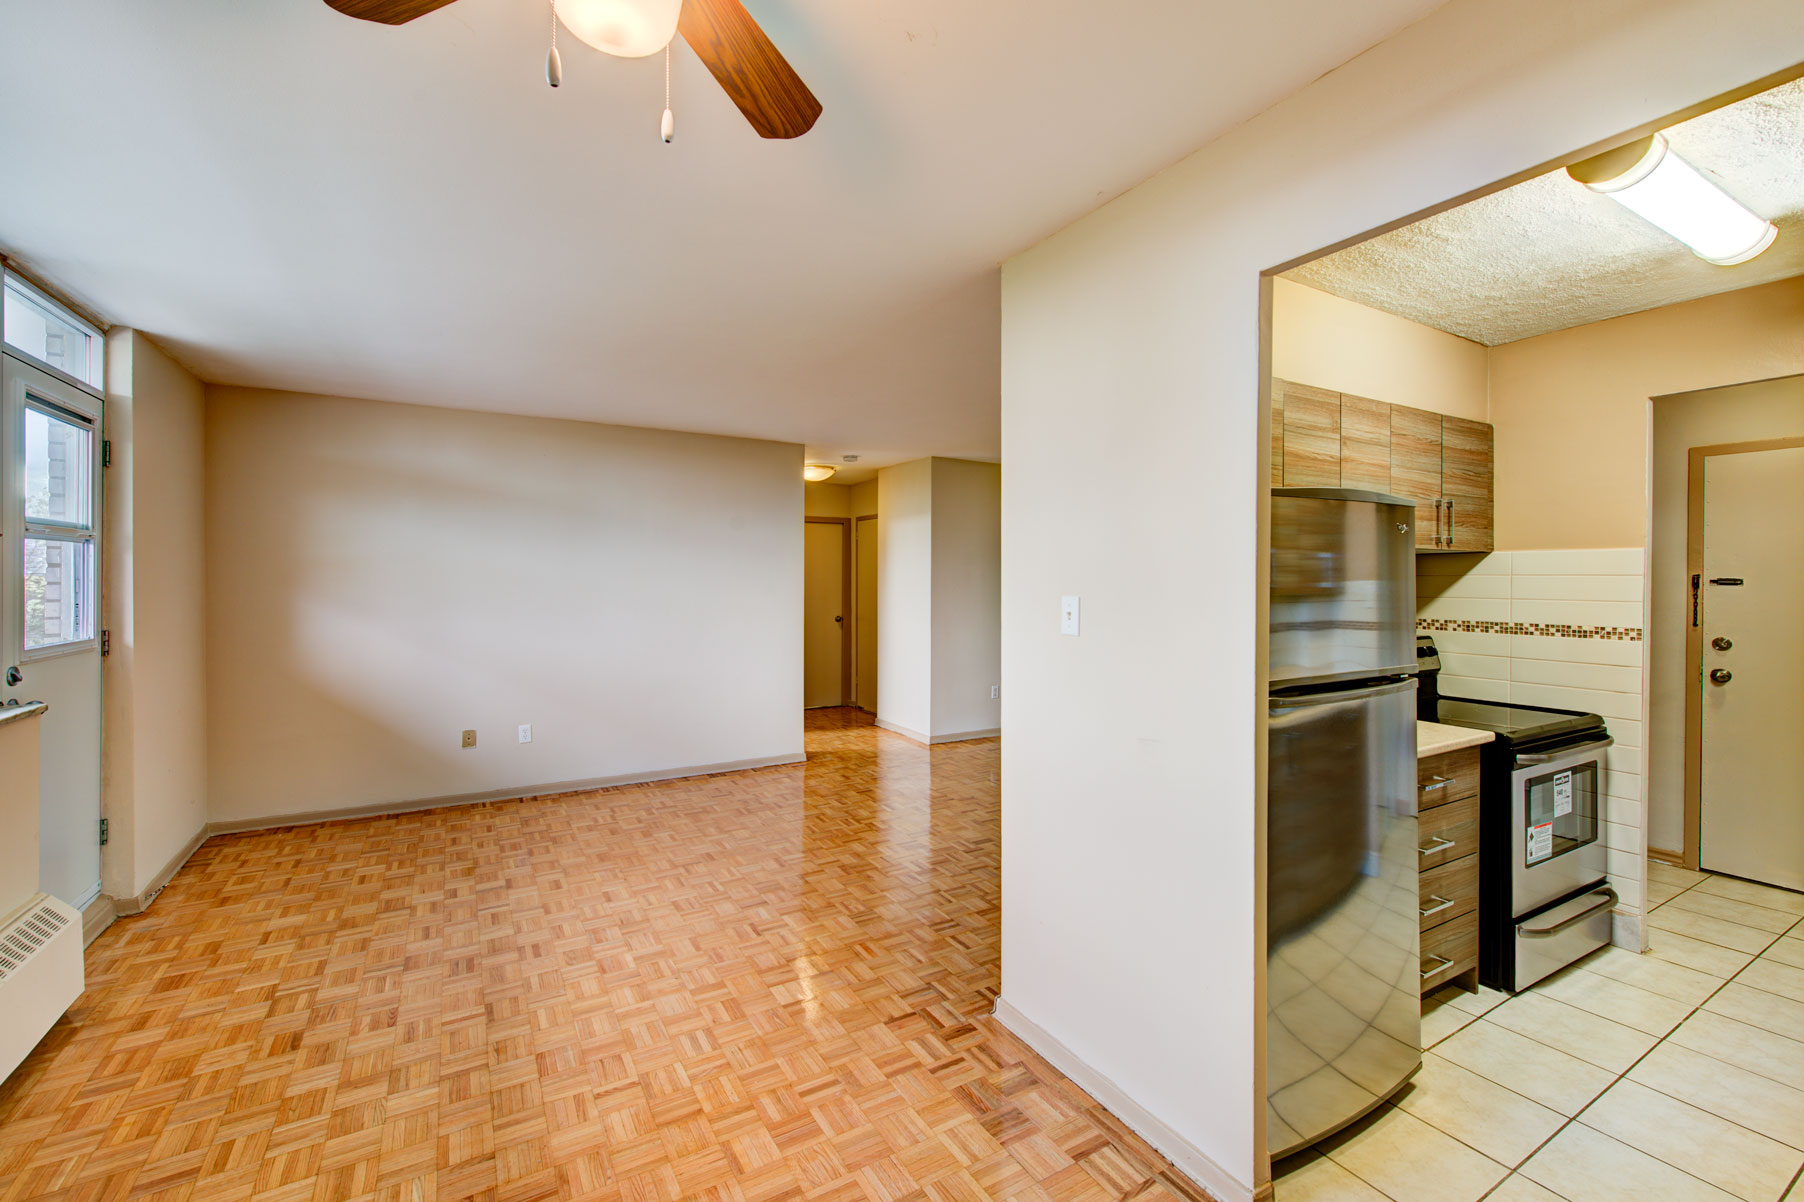 3 Bedroom Apartment Mississauga 28 Images 121 Agnes St